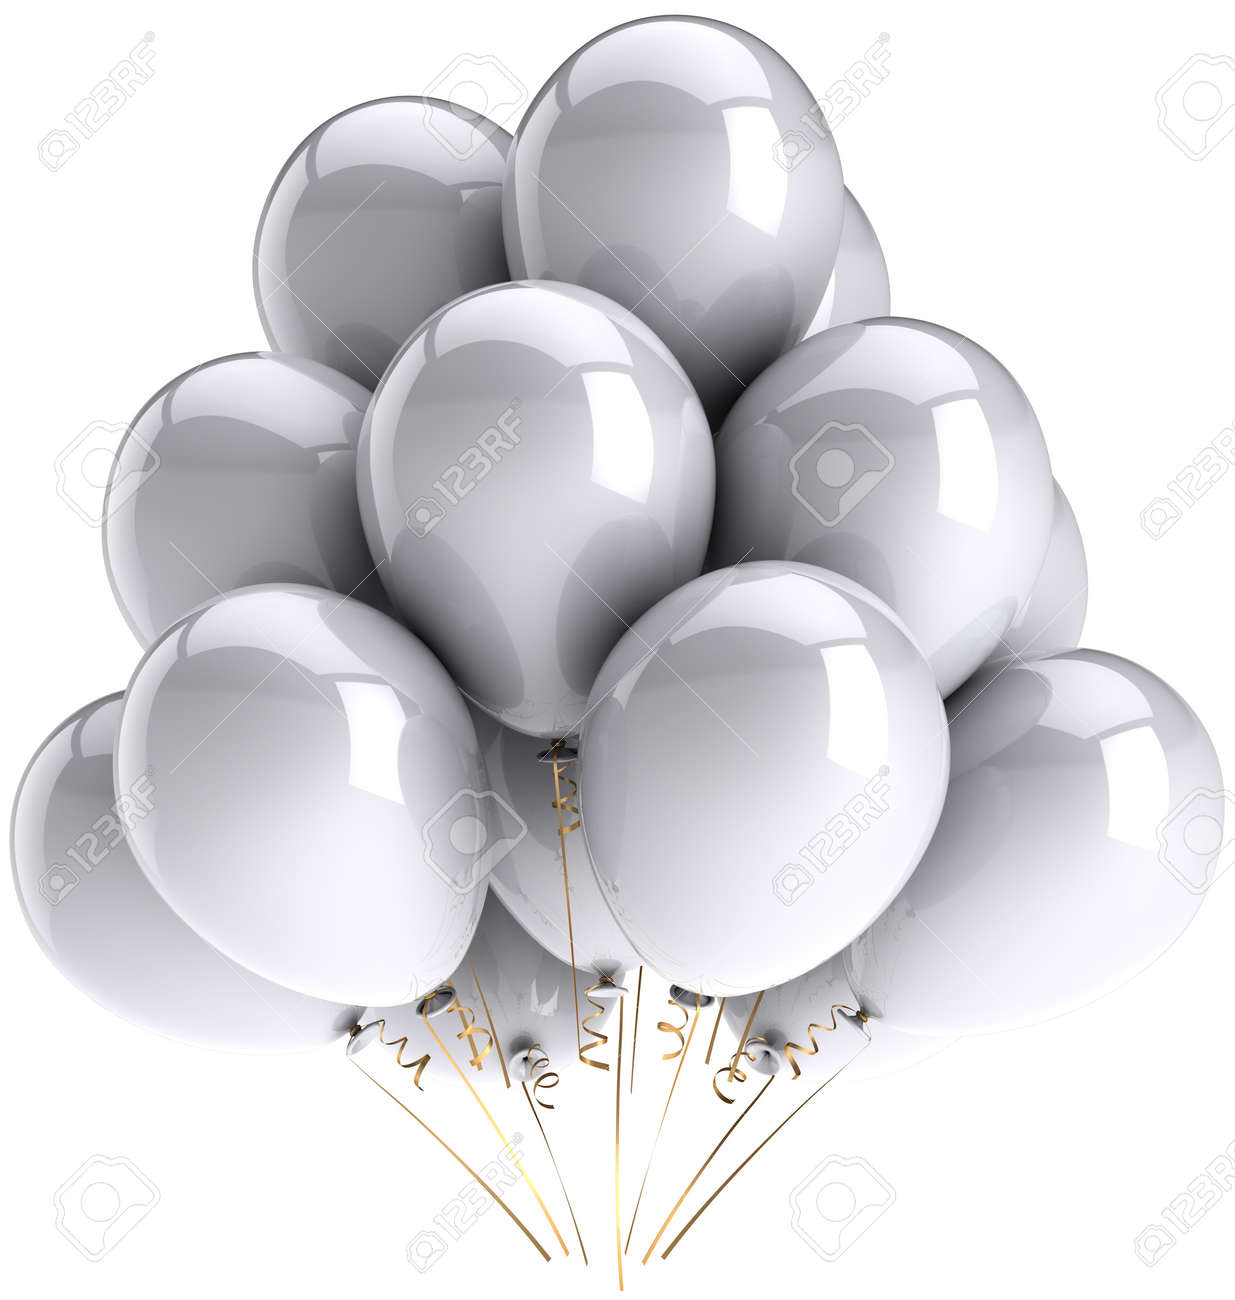 Party balloons white grey colorless. Birthday celebrate decoration classic. Happiness joyful virgin wedding concept. This is a detailed three-dimensional render 3d. Isolated on white background Stock Photo - 9099032